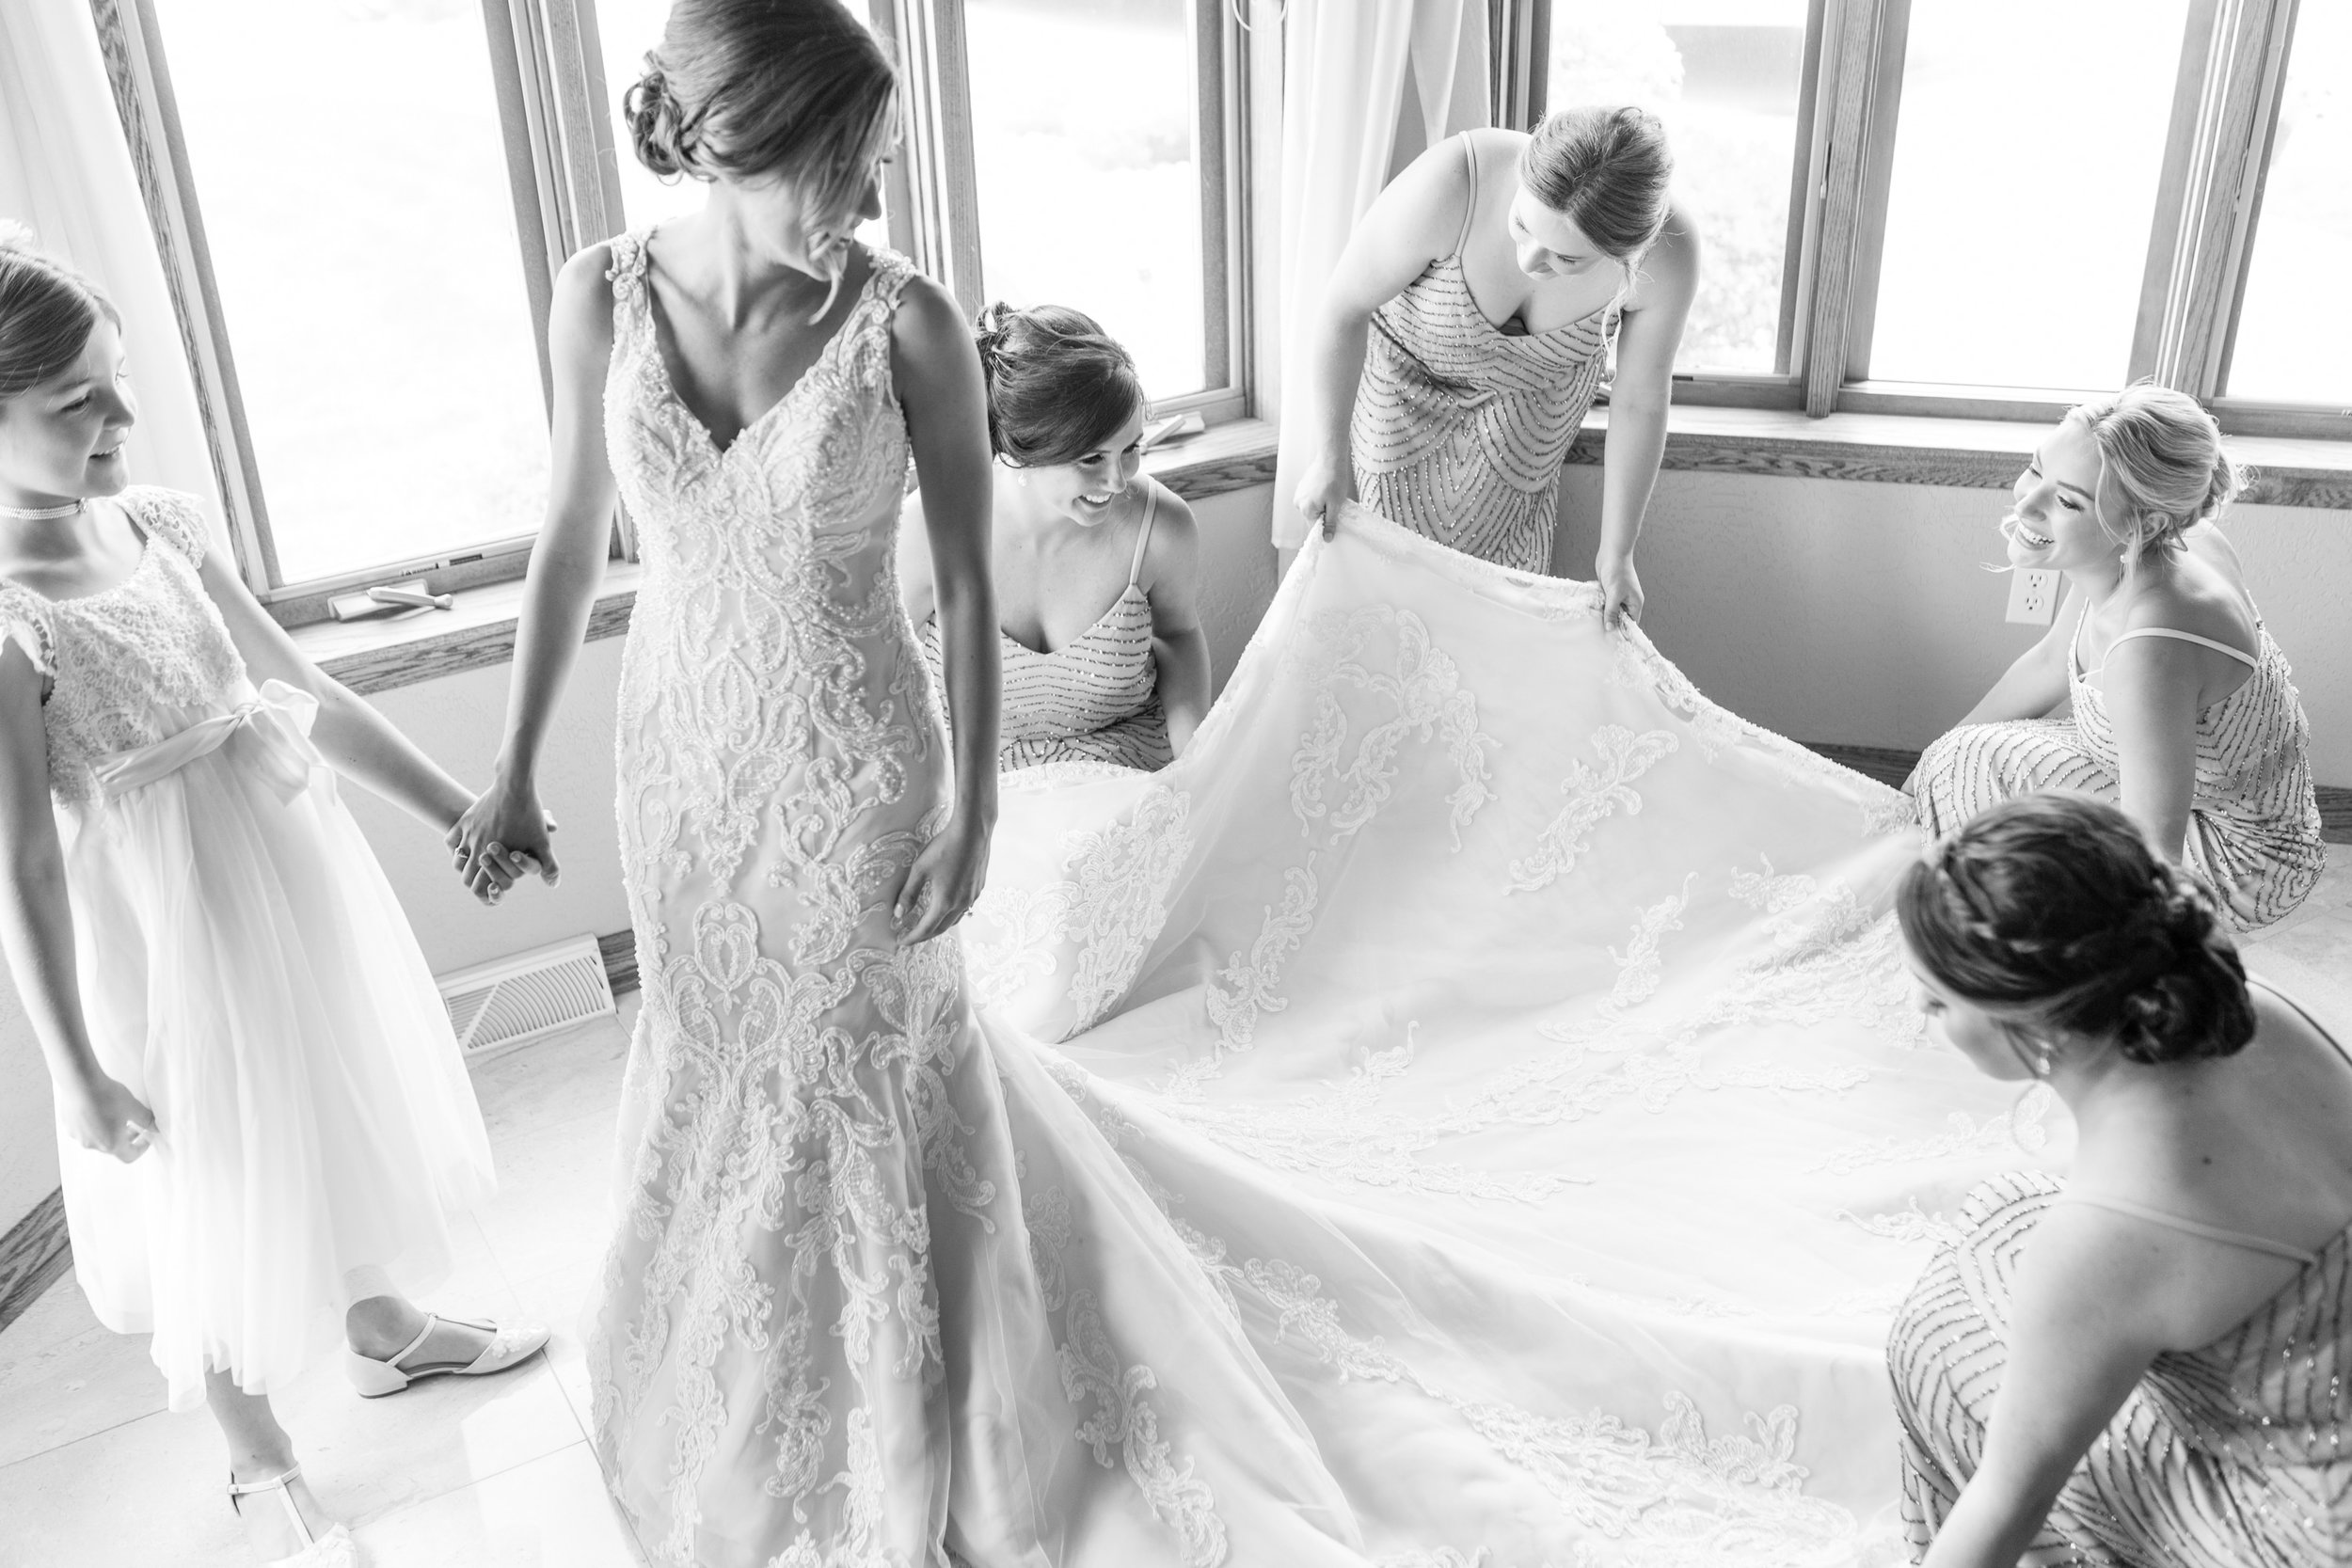 Bride getting into wedding dress with cathedral length train for Pittsburgh wedding planned by Exhale Events. Find more wedding inspiration at exhale-events.com!